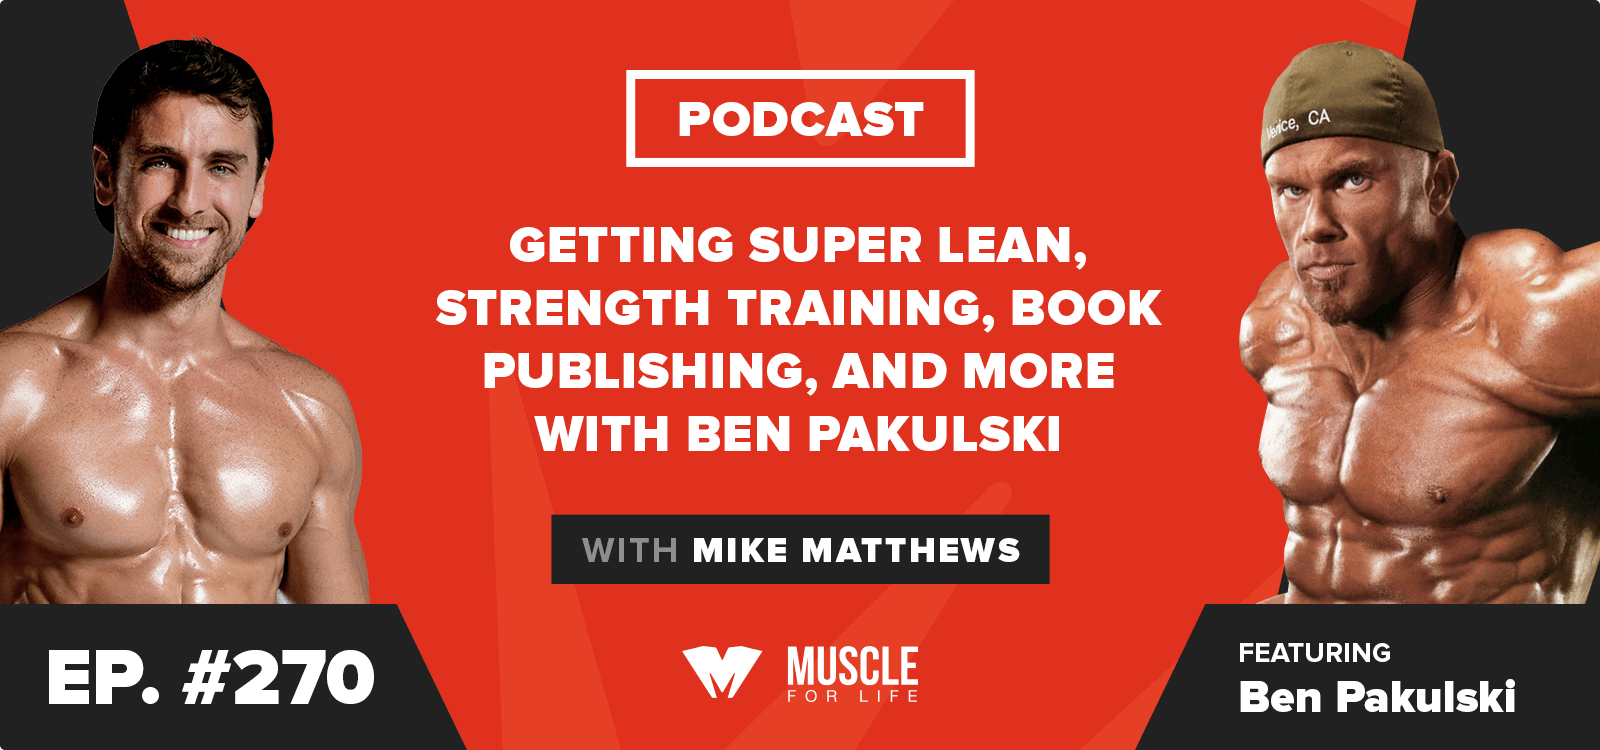 Getting Super Lean, Strength Training, Book Publishing, and More with Ben Pakulski